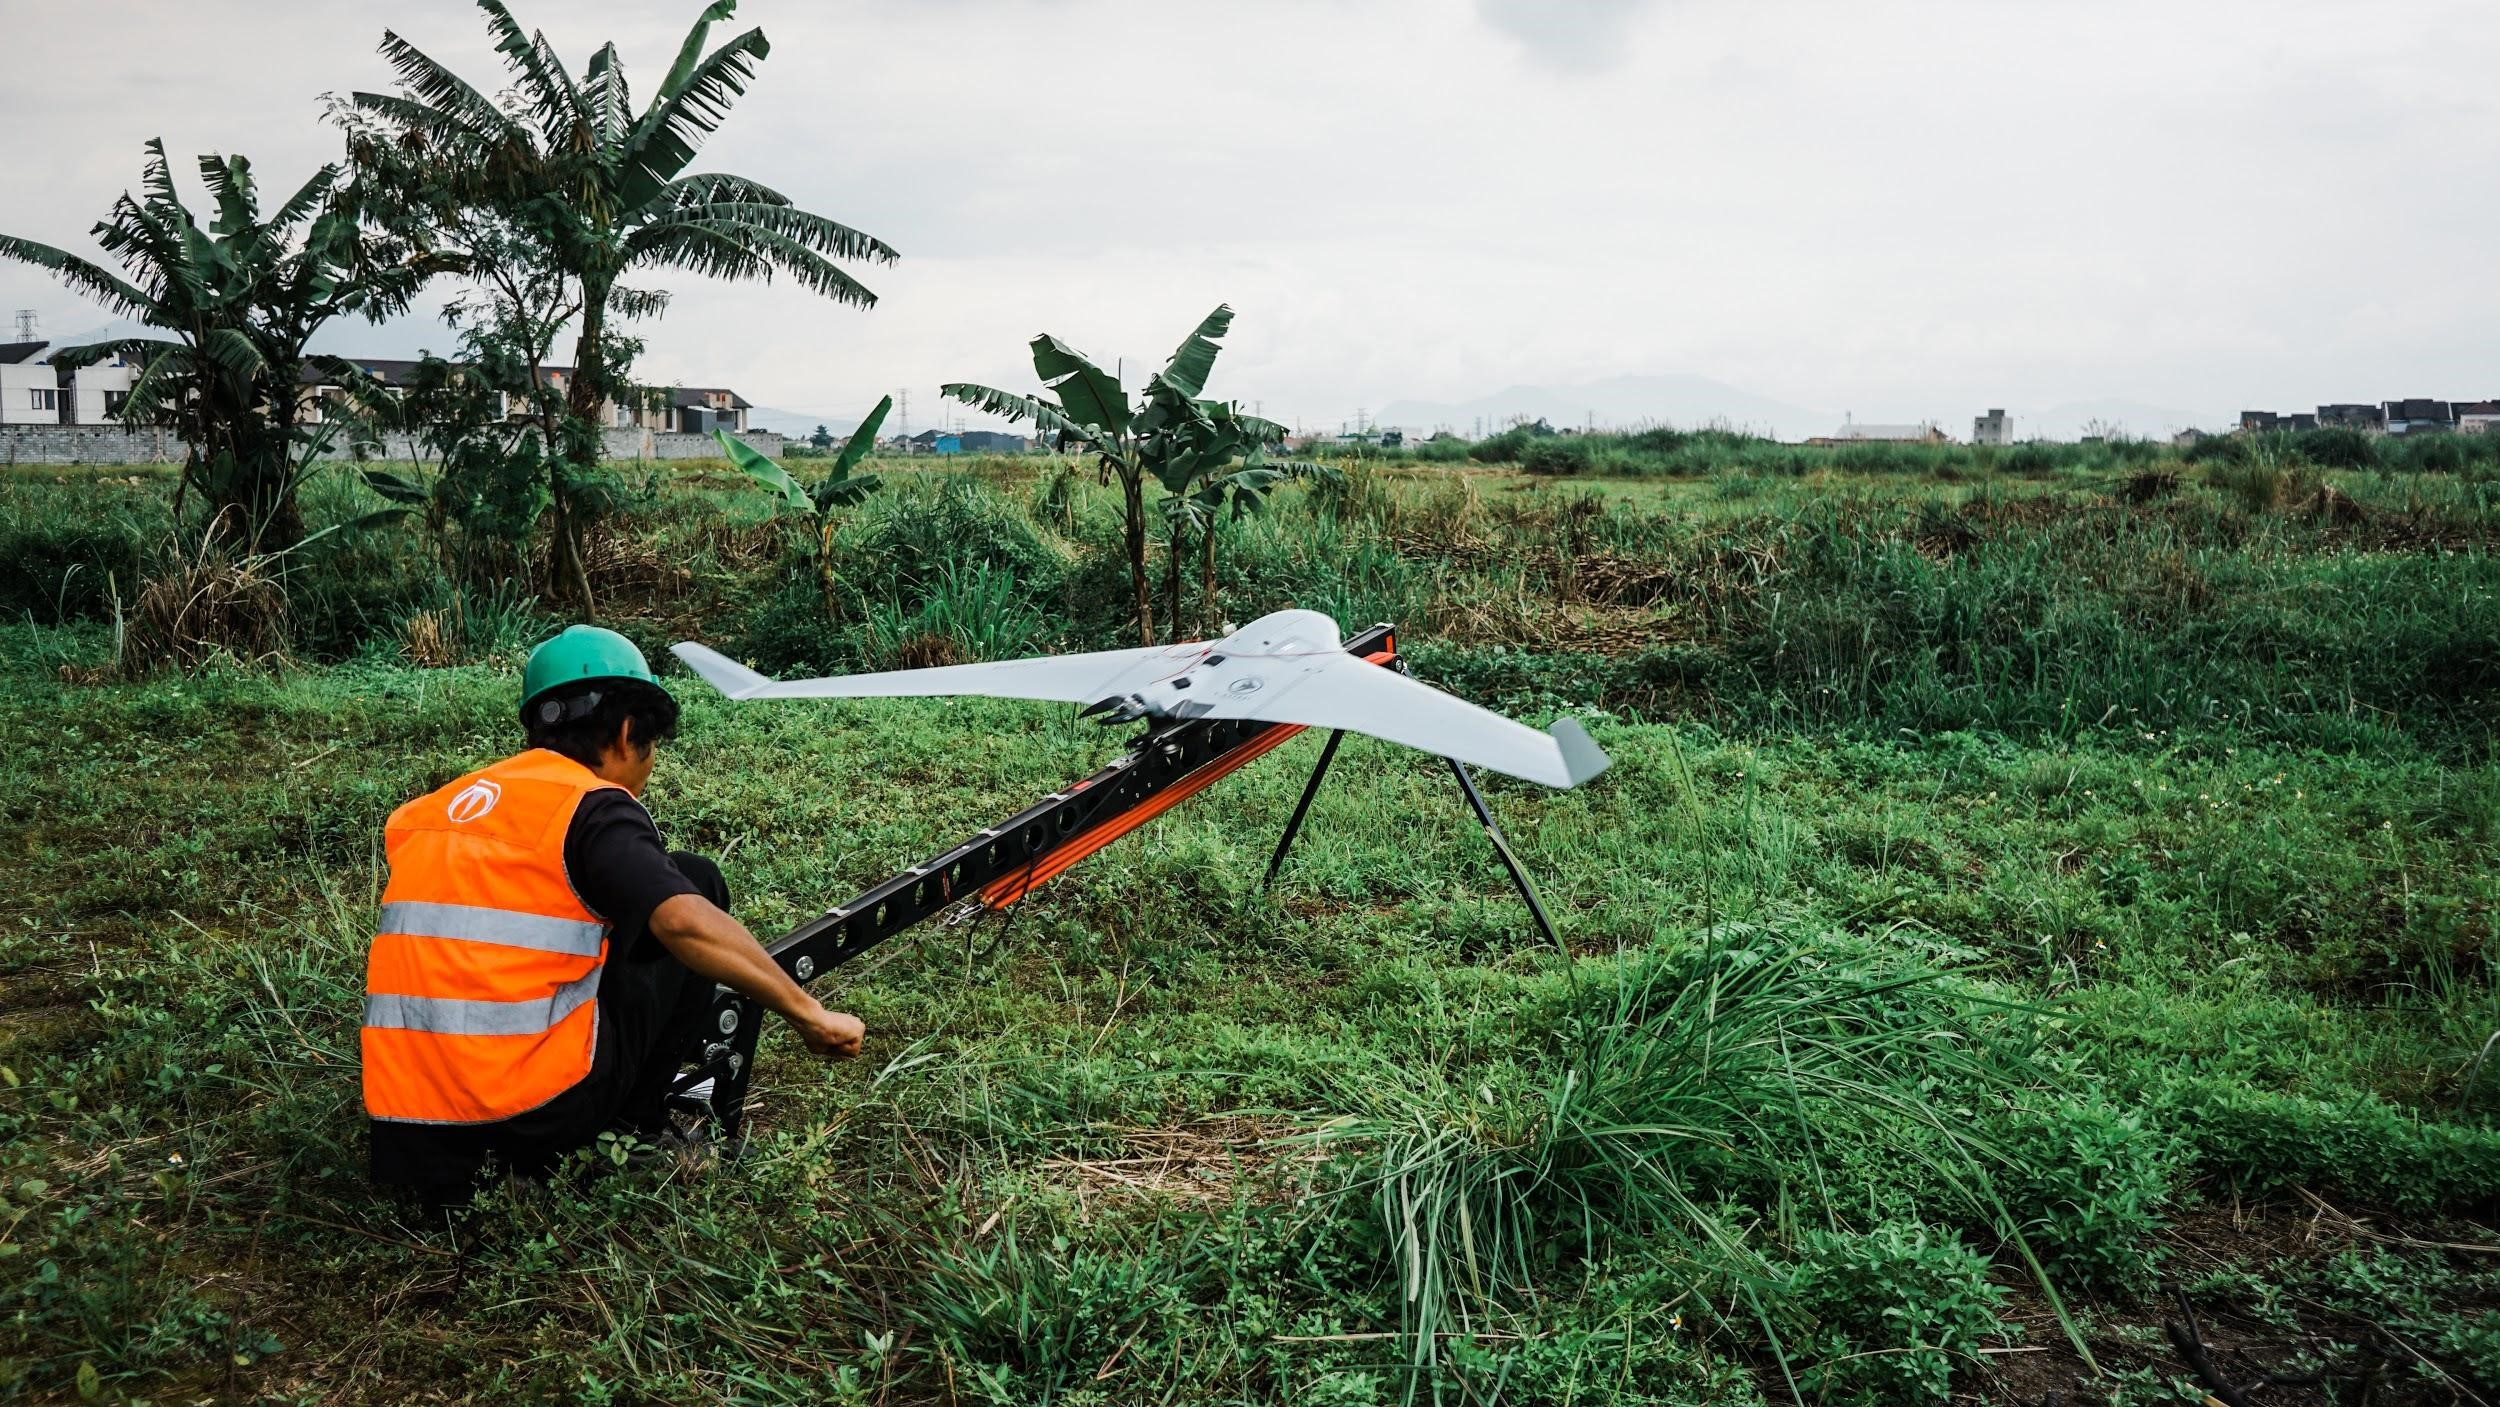 Terra Drone Indonesia - Drone survey